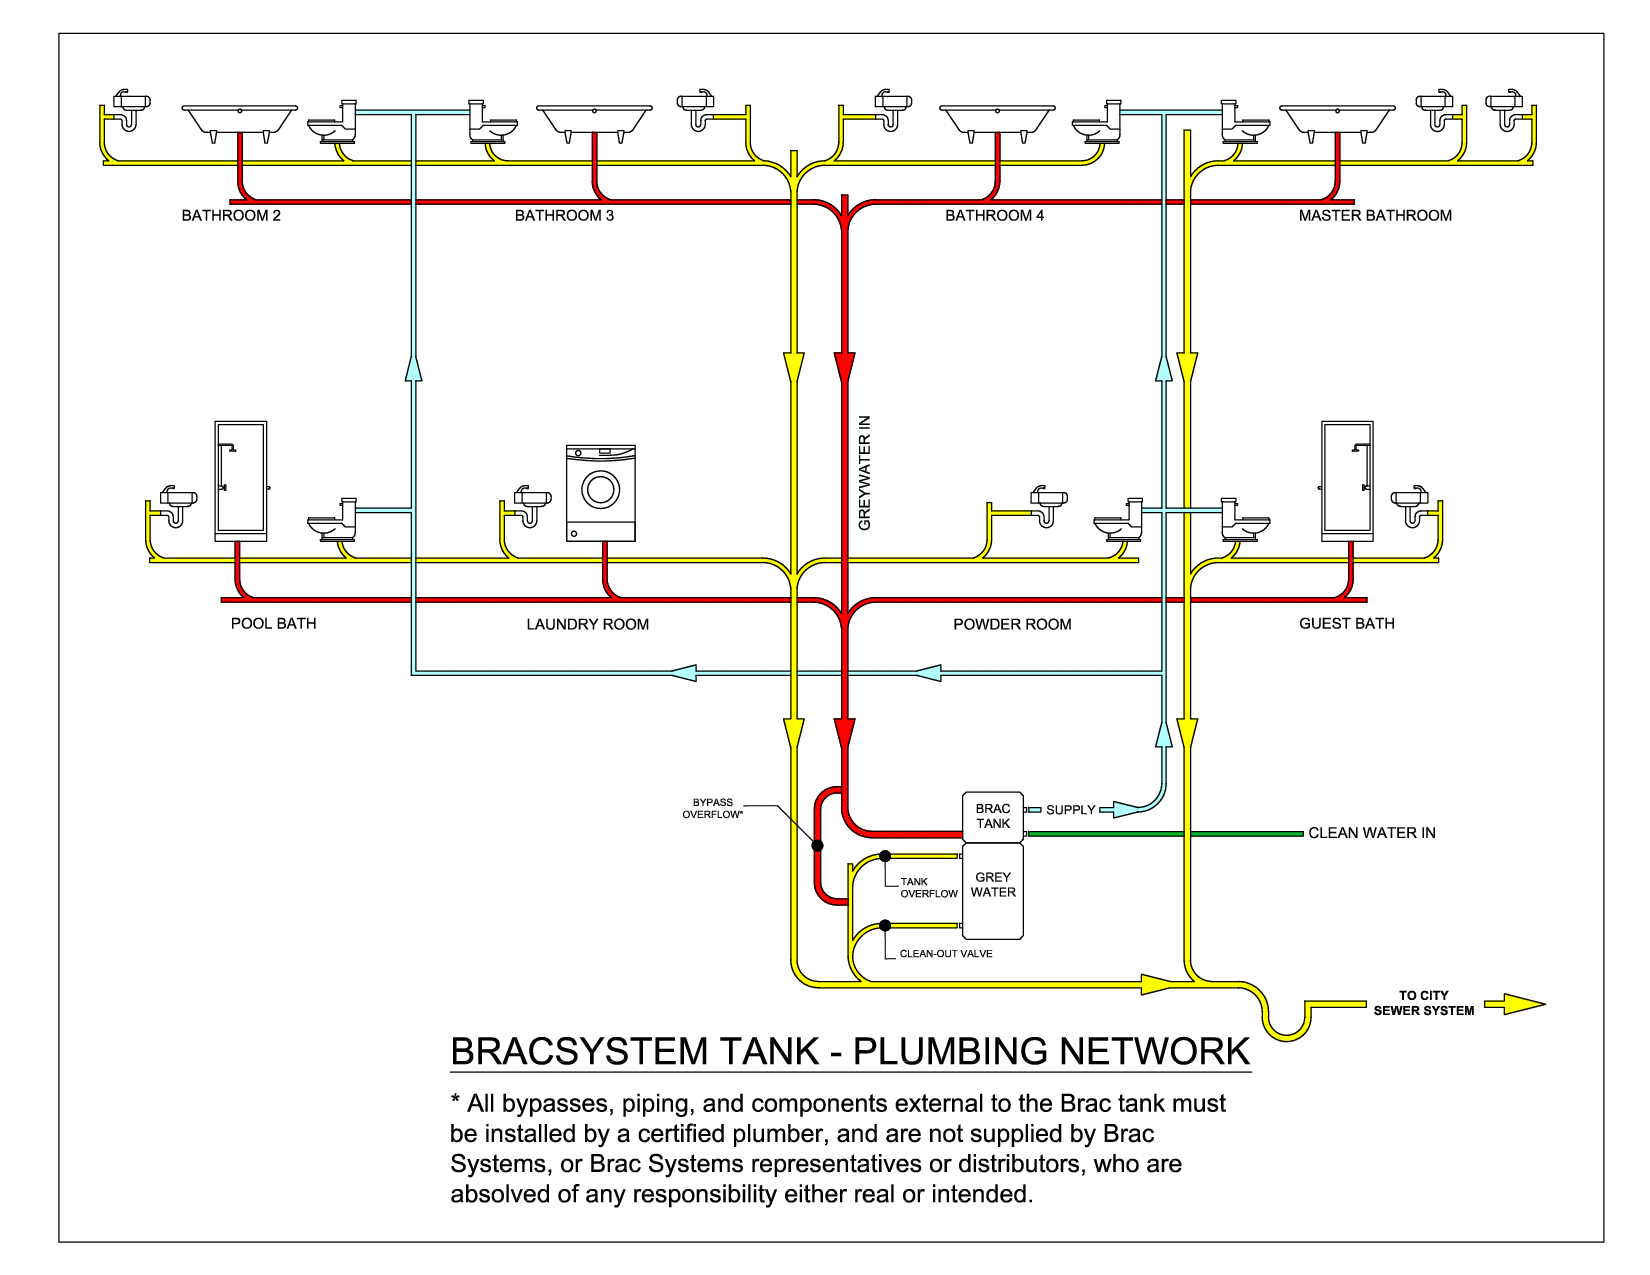 6a10db7de24186000f000aa7eded67b2 mobile home plumbing systems plumbing network diagram pdf Single Wide Mobile Home Plumbing Diagram at bayanpartner.co